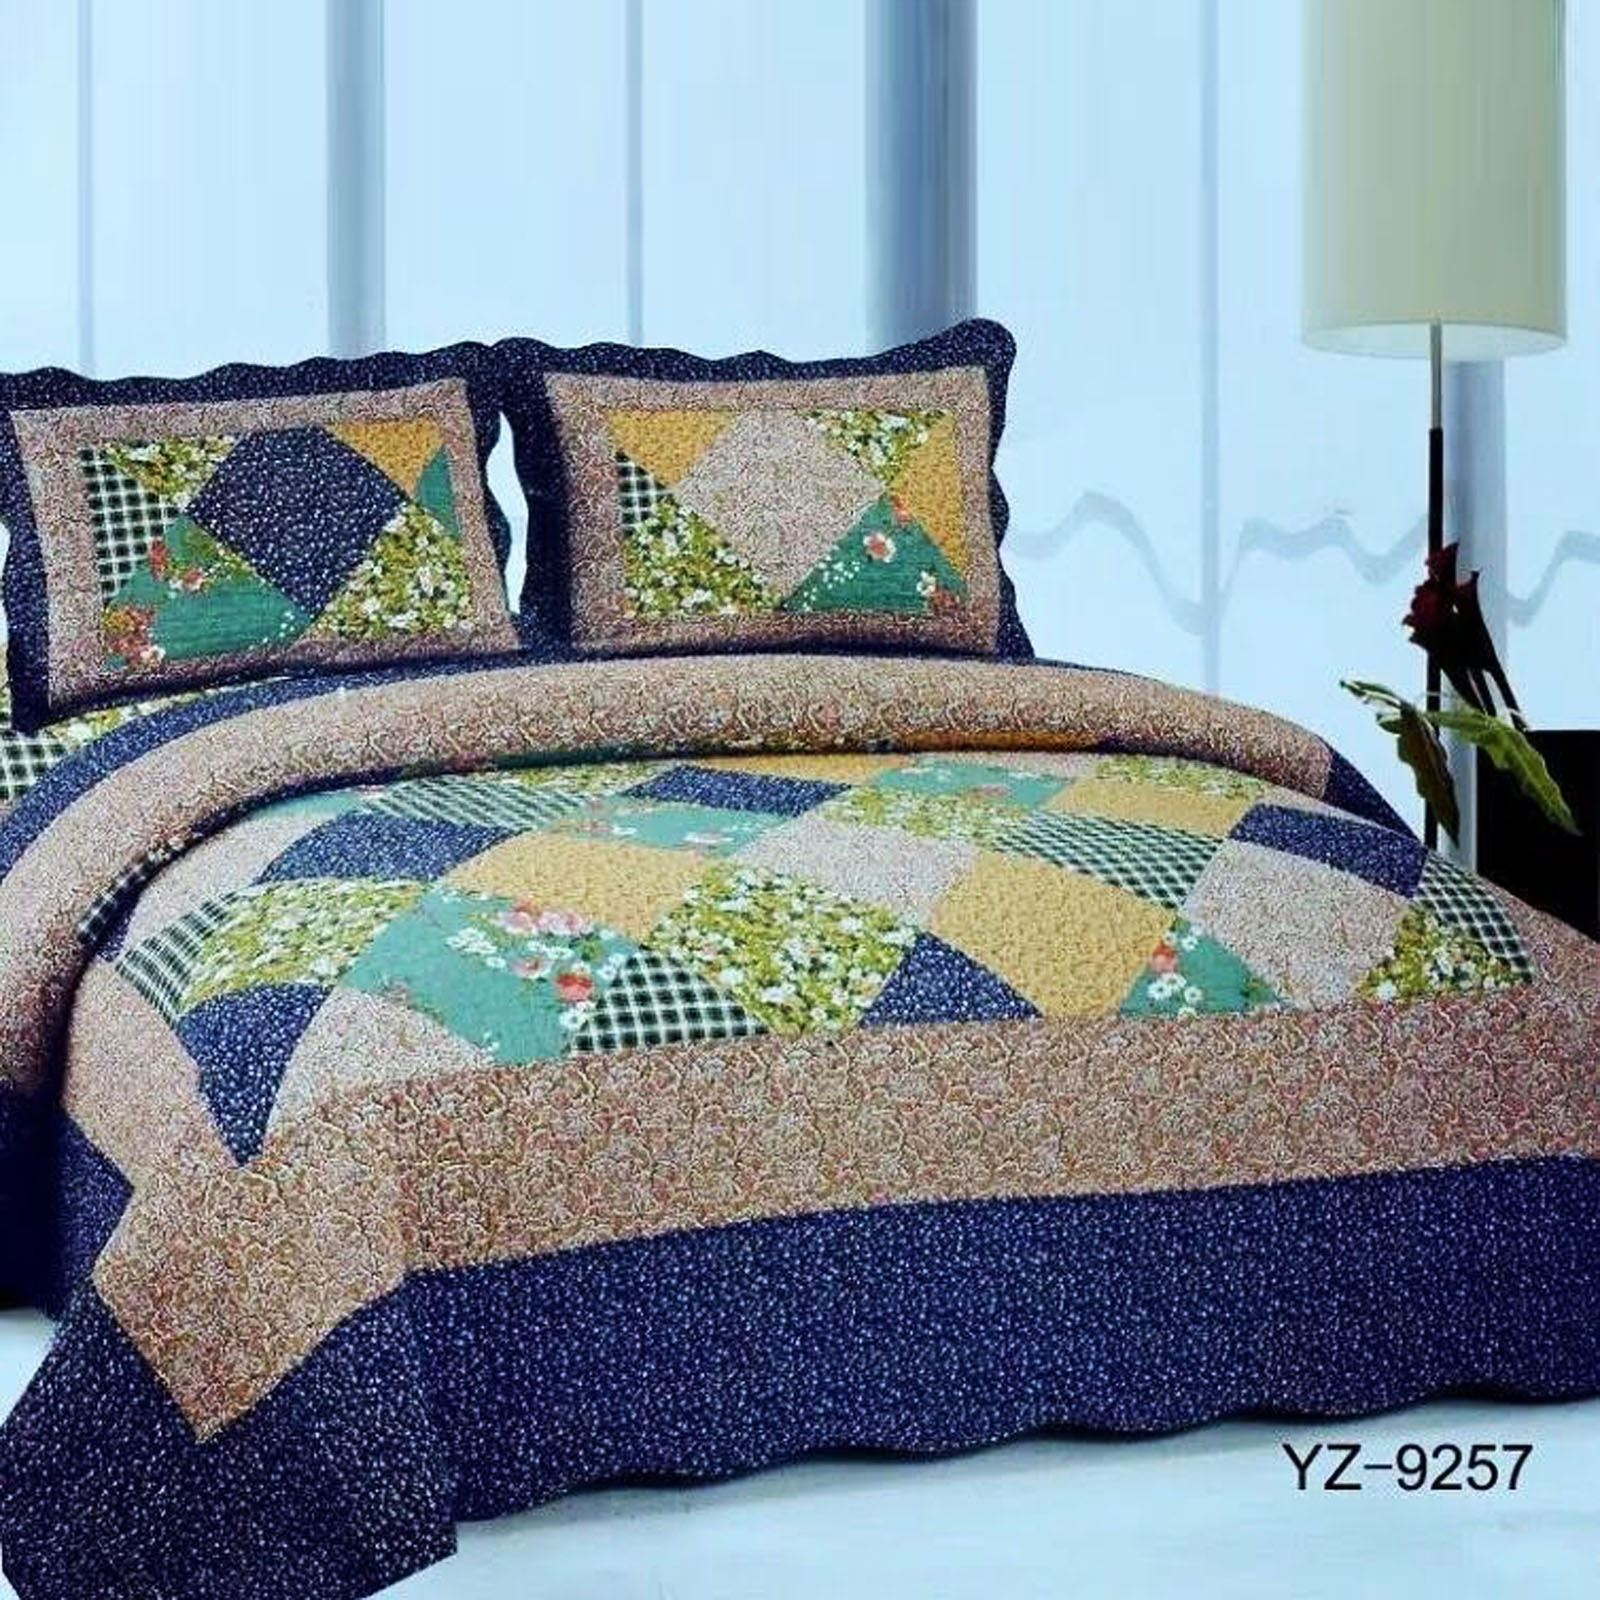 NEW LUXURY BEDSPREAD PILLOW COVER THROW JACQUARD QUILTED PATCHWORK SET HONEYCOMB eBay